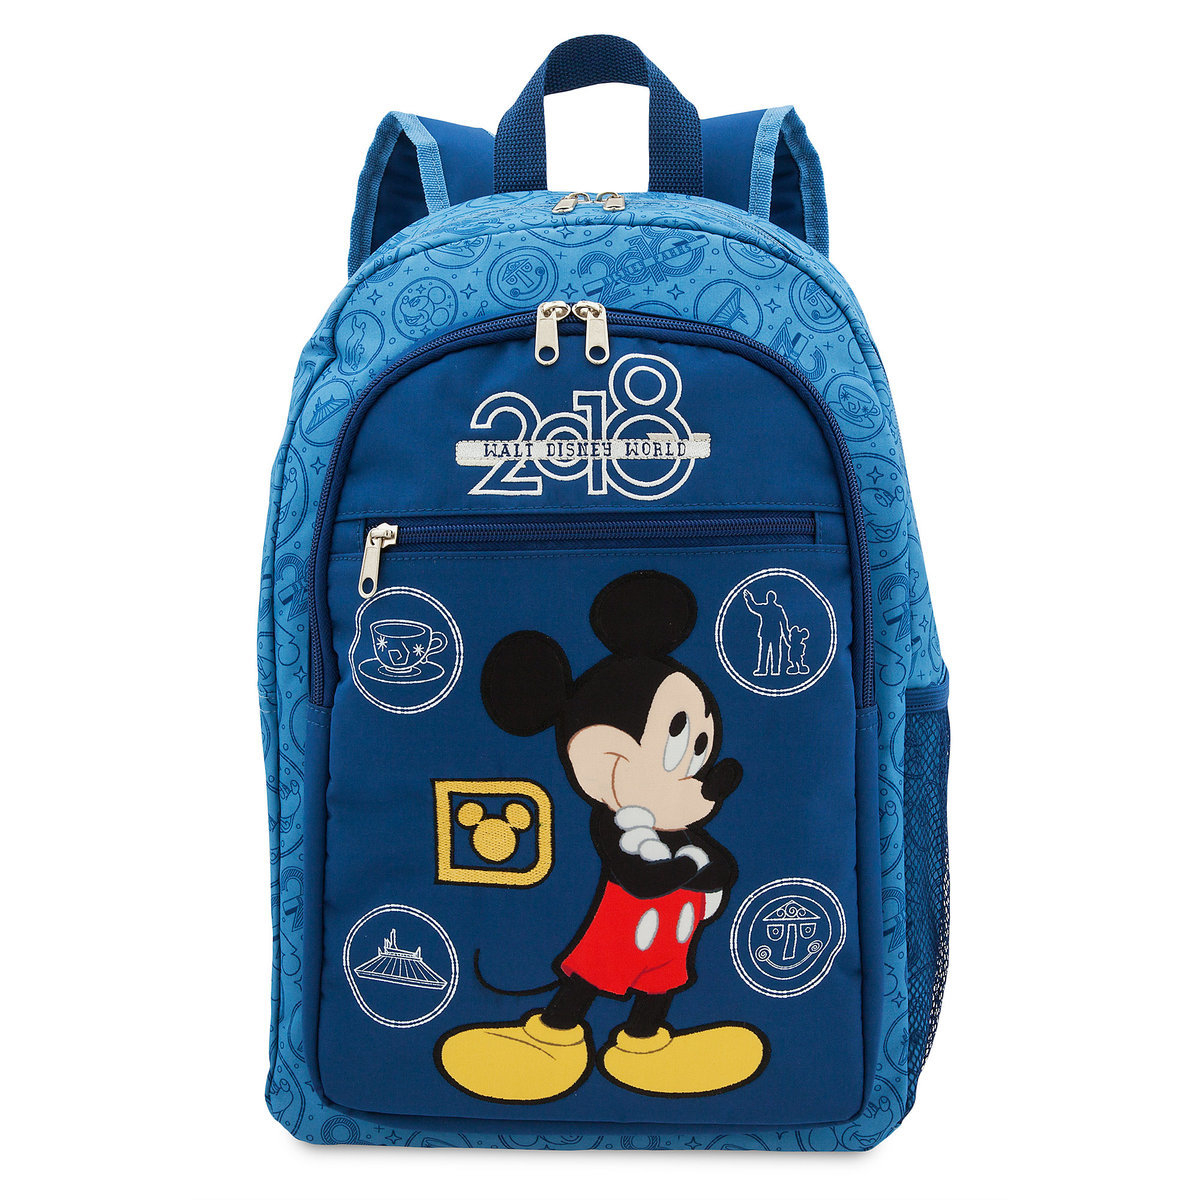 Mickey mouse backpack walt disney world 2018 shopdisney mickey mouse backpack walt disney world 2018 gumiabroncs Images